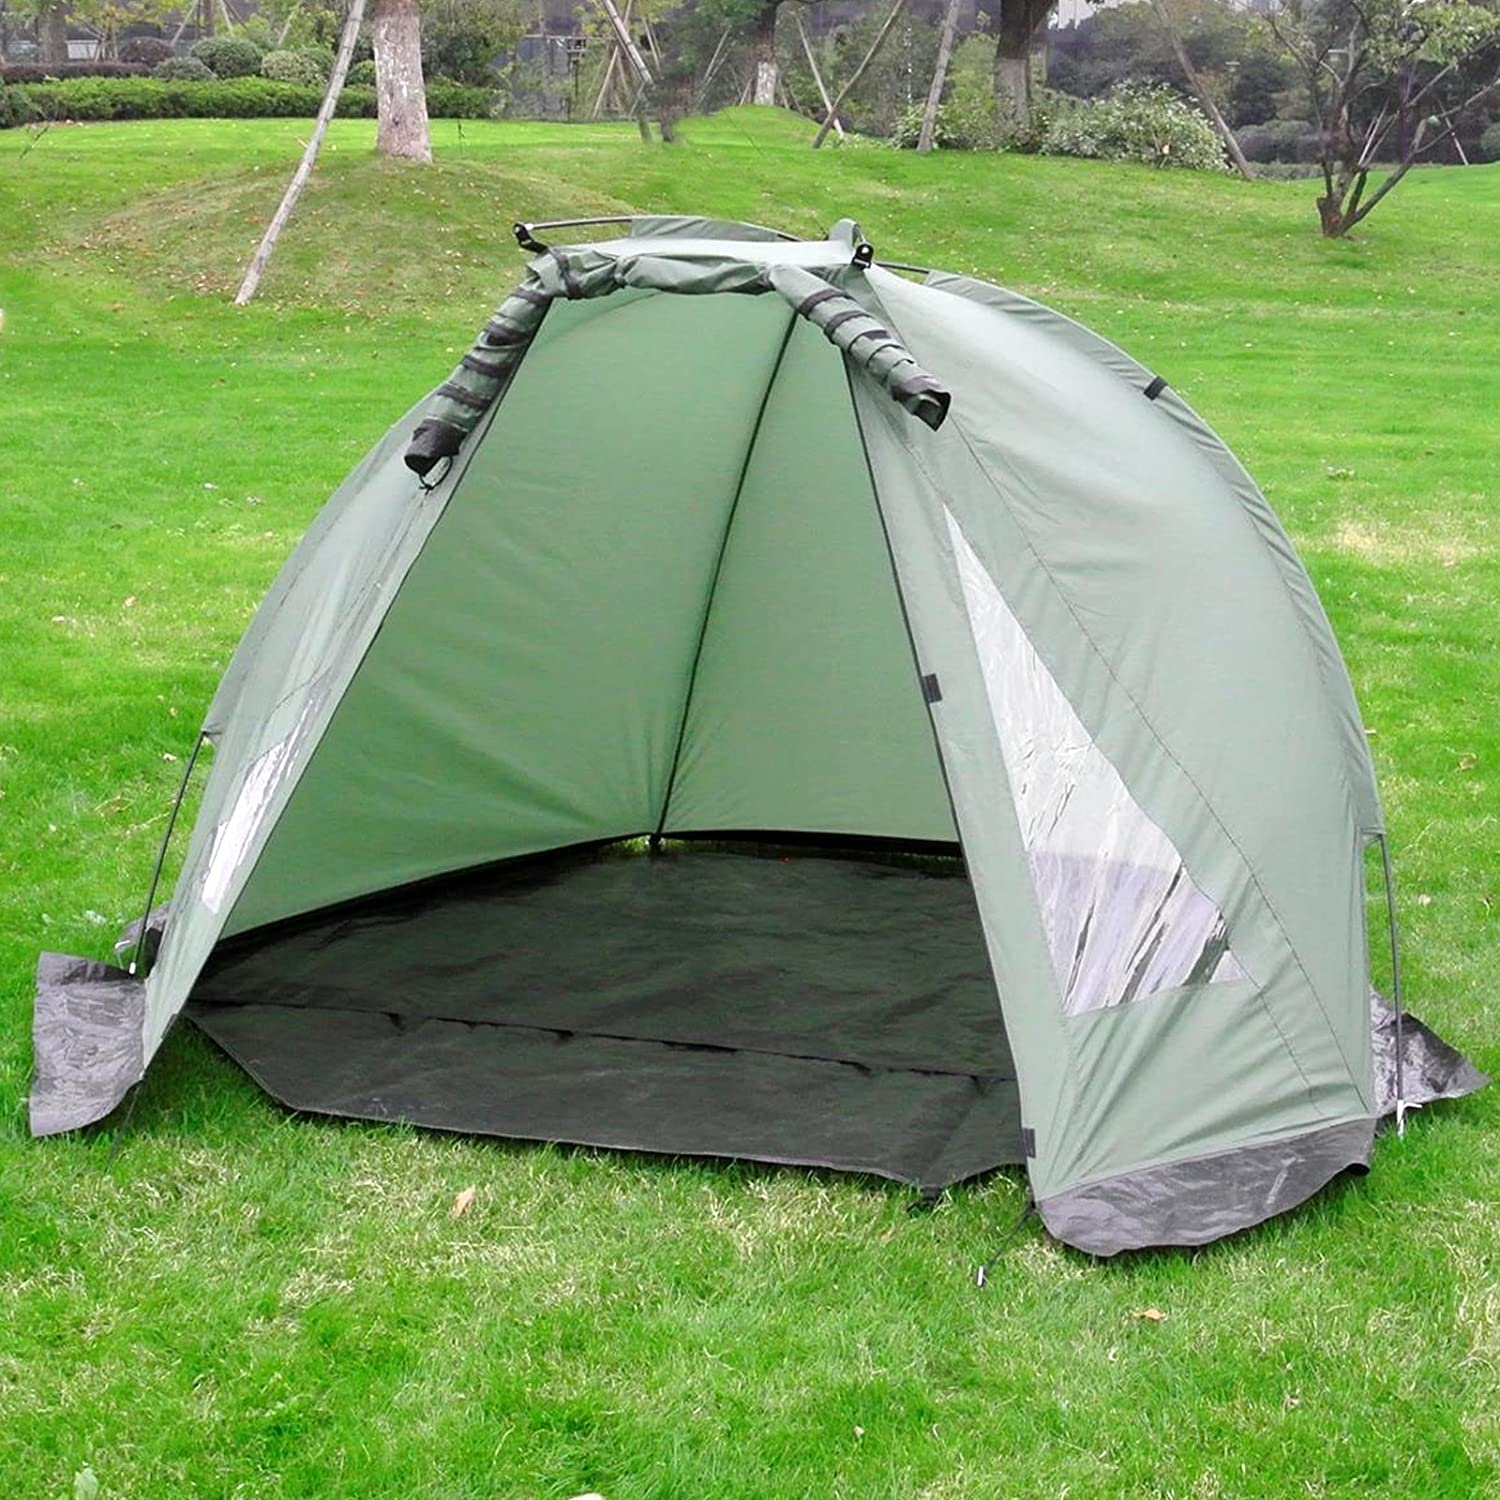 Carp Fishing Bivvy Tent Shelter | 1-2 Man Quick Erect Lightweight Waterproof Day Shelter | Includes Groundsheet & Carry Bag | M&W Active Leisure